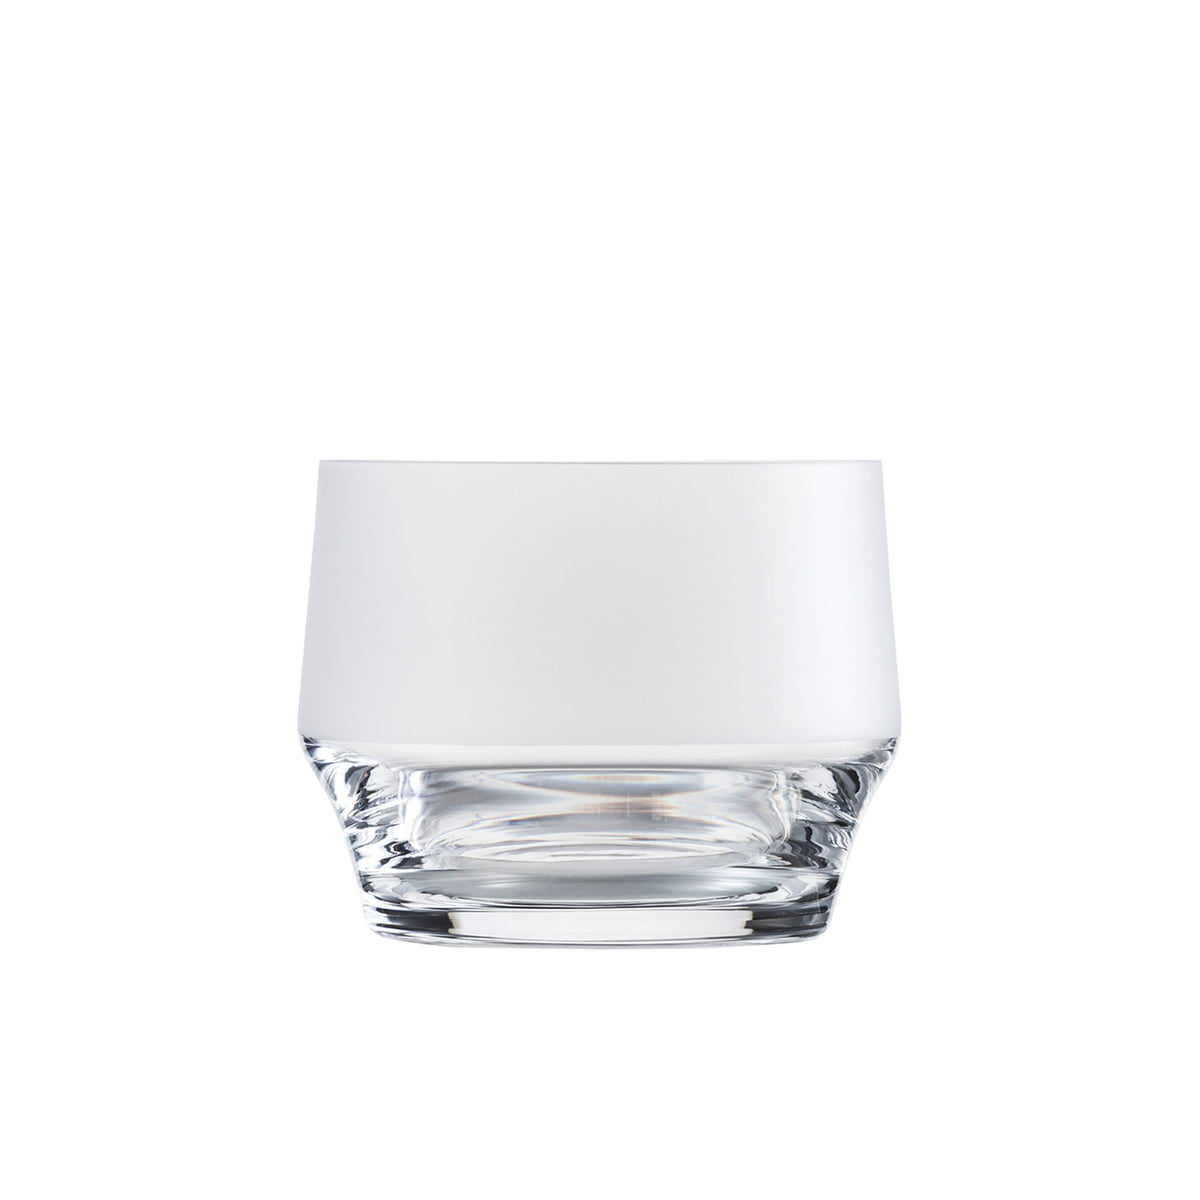 Clouds Votive By Zwiesel 1872 In The Shop